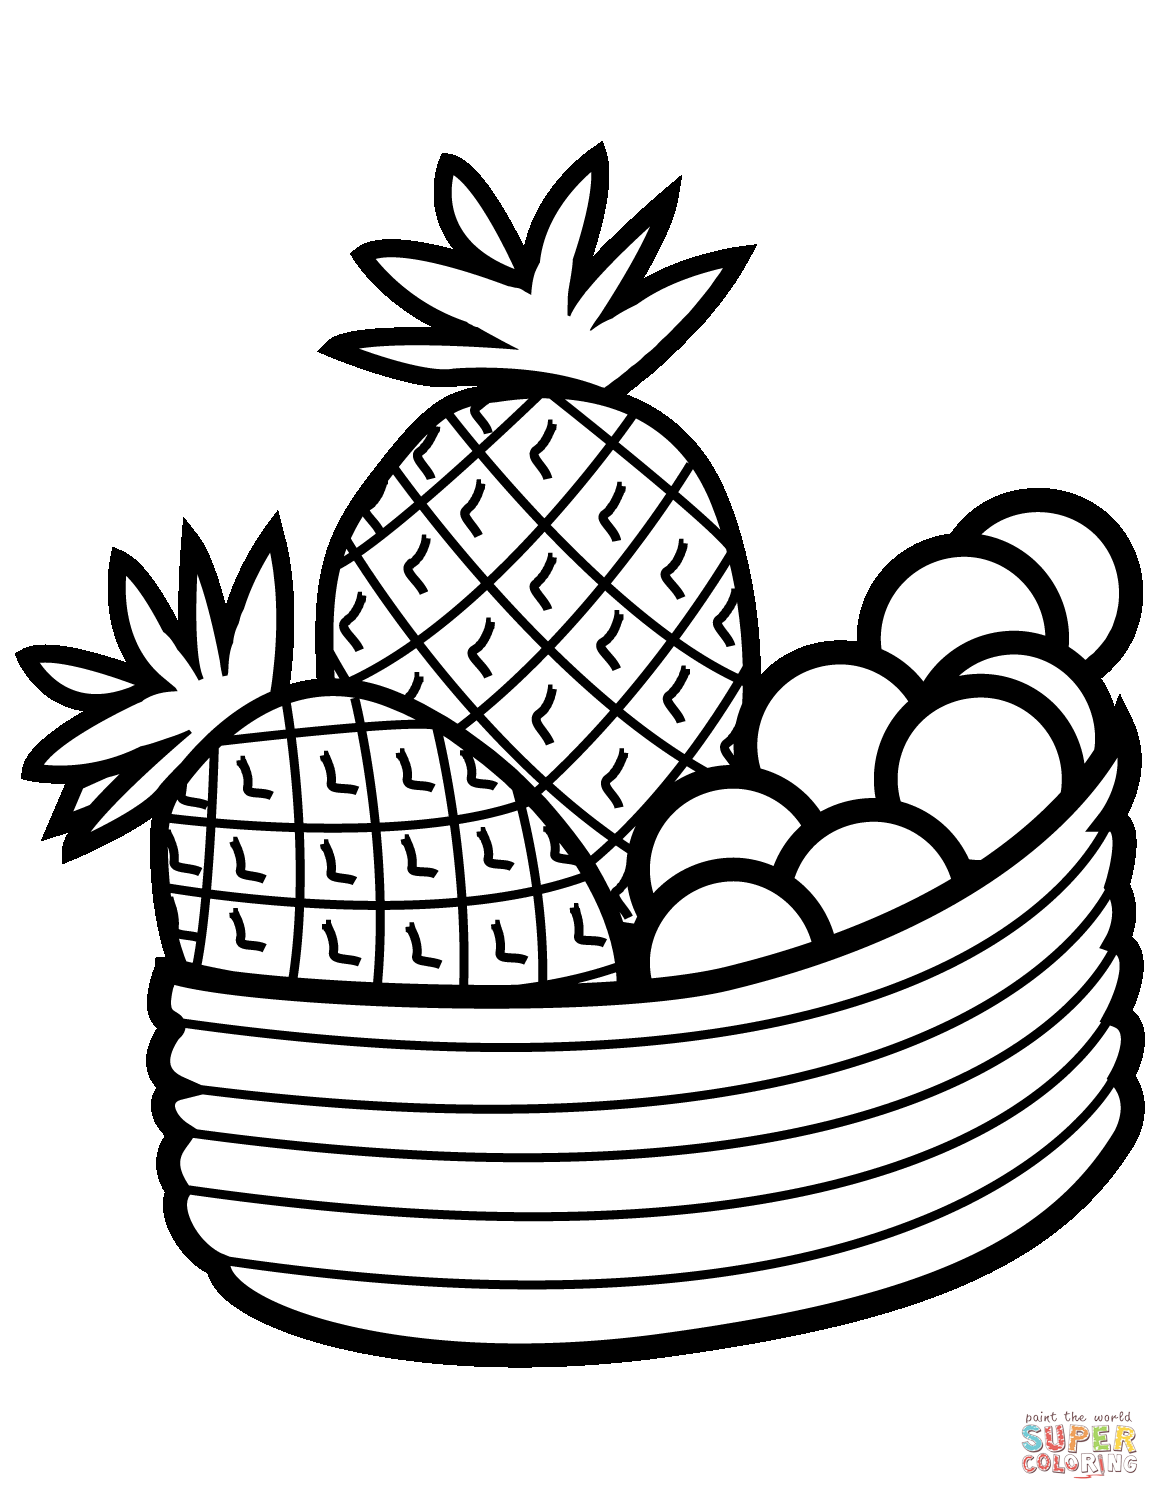 coloring pineapple clipart pineapple coloring page only coloring pages fruit coloring clipart pineapple